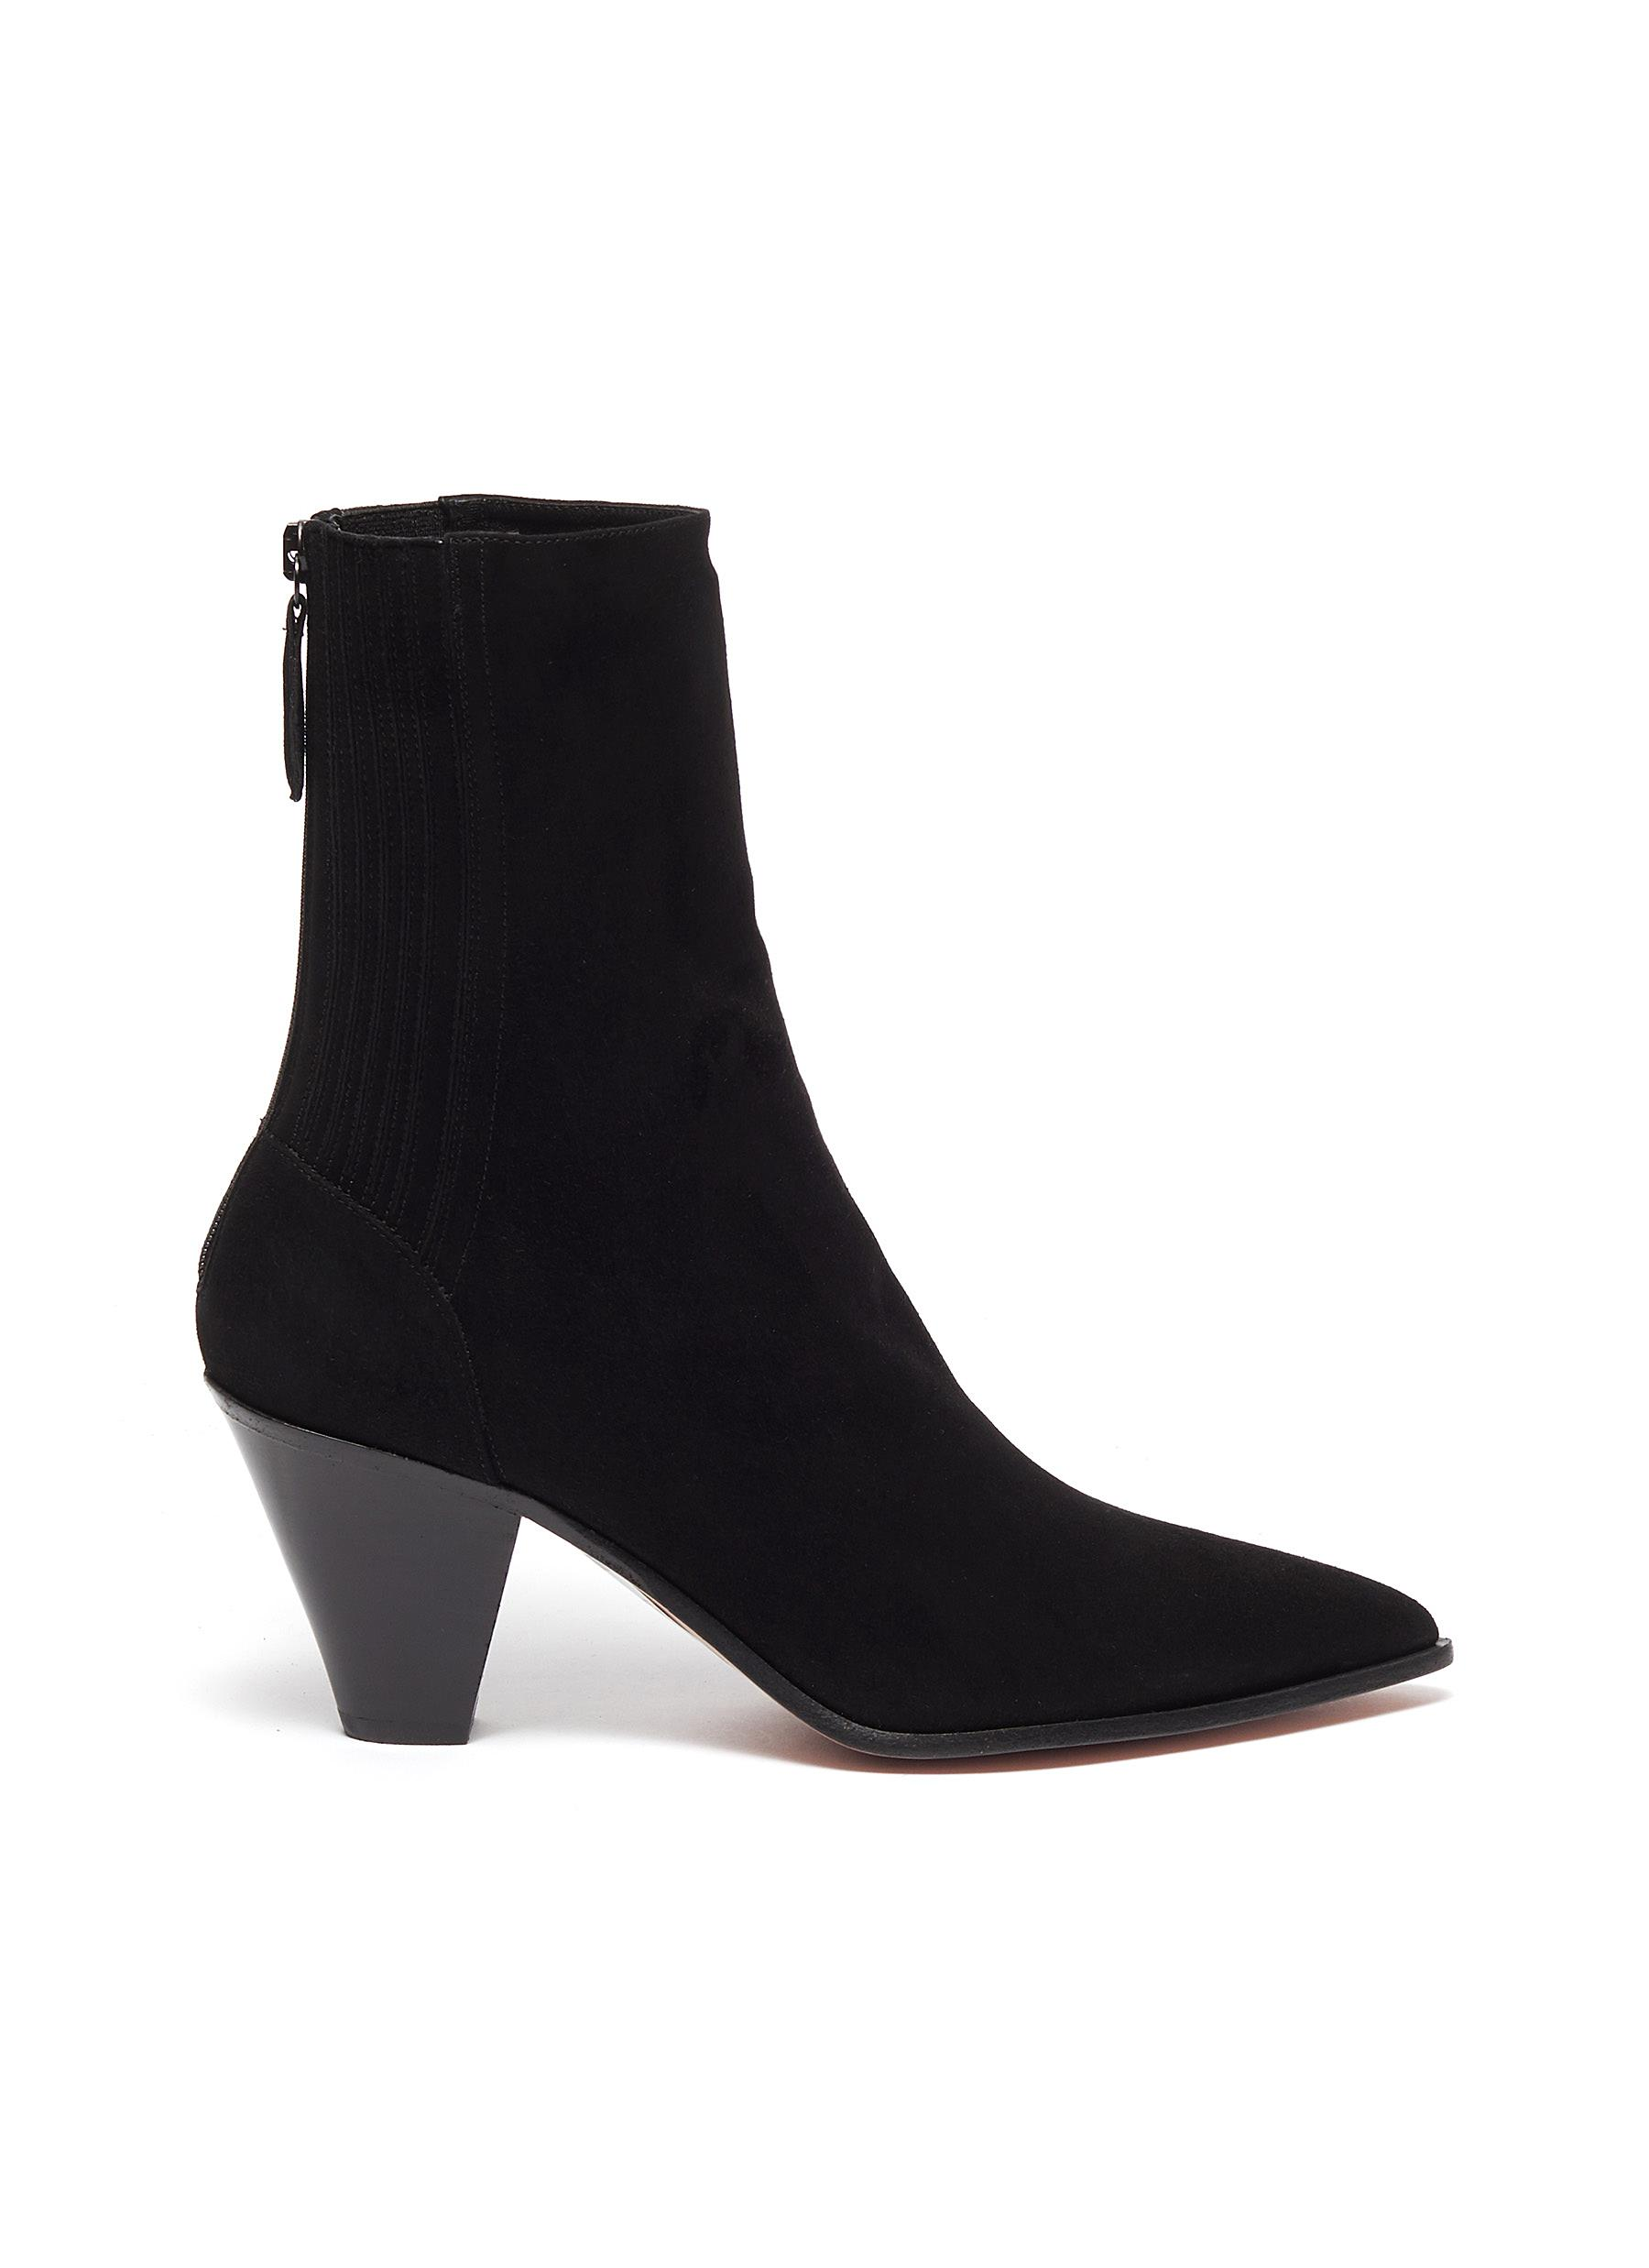 Saint Honore suede ankle boots by Aquazzura